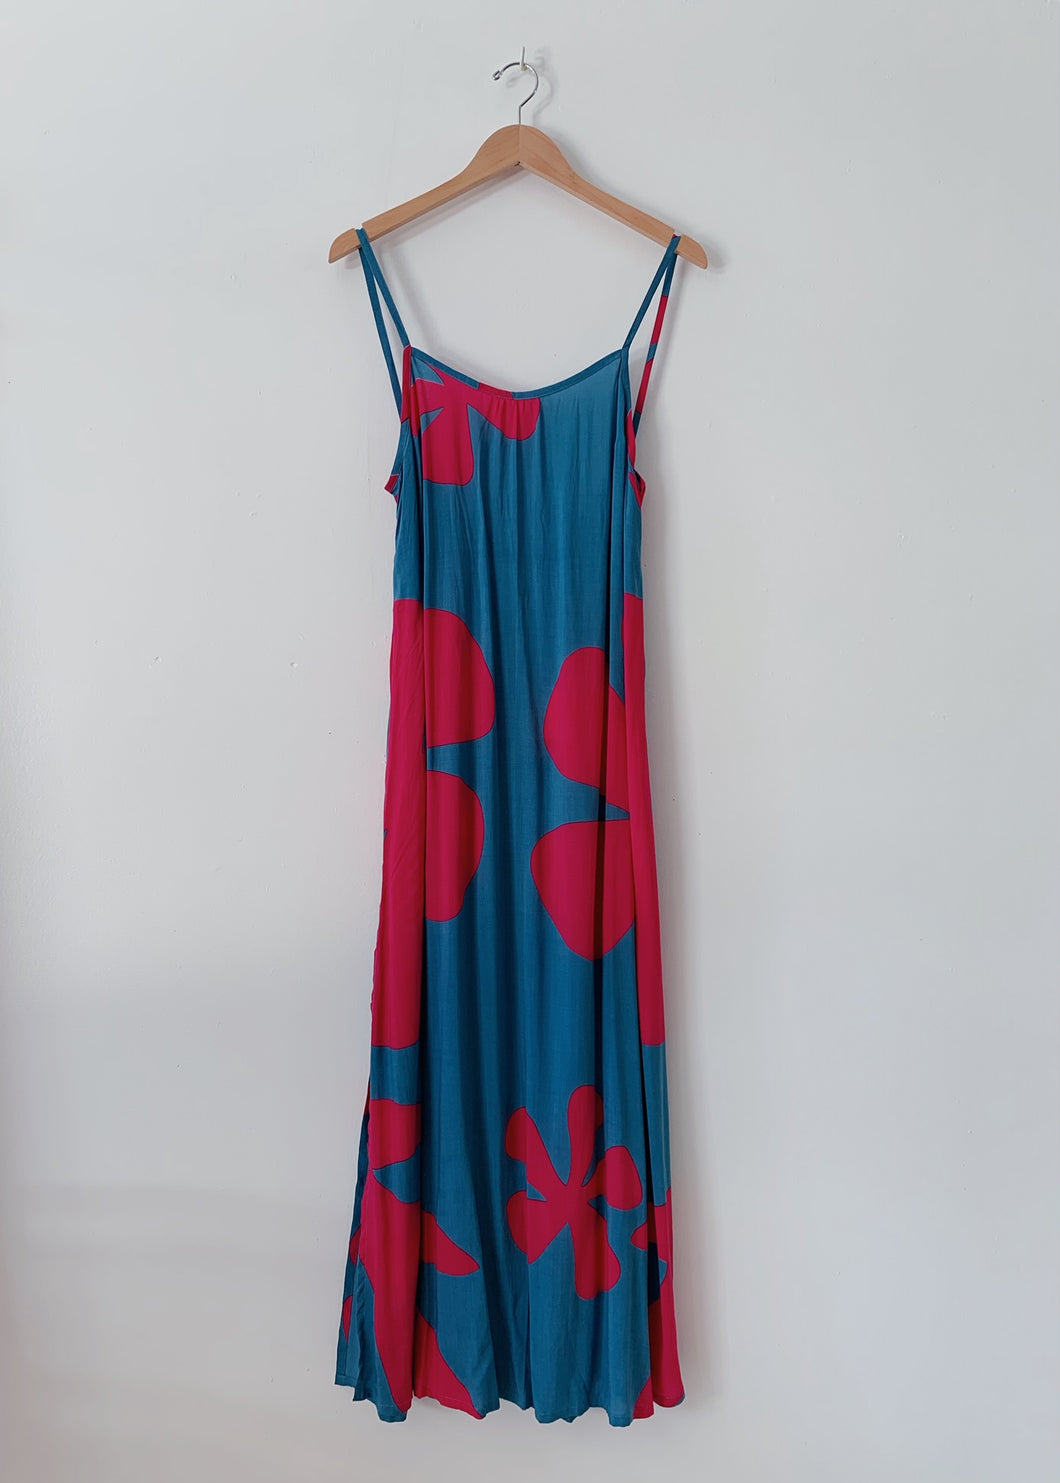 KAIONE DRESS - Neon Pareo